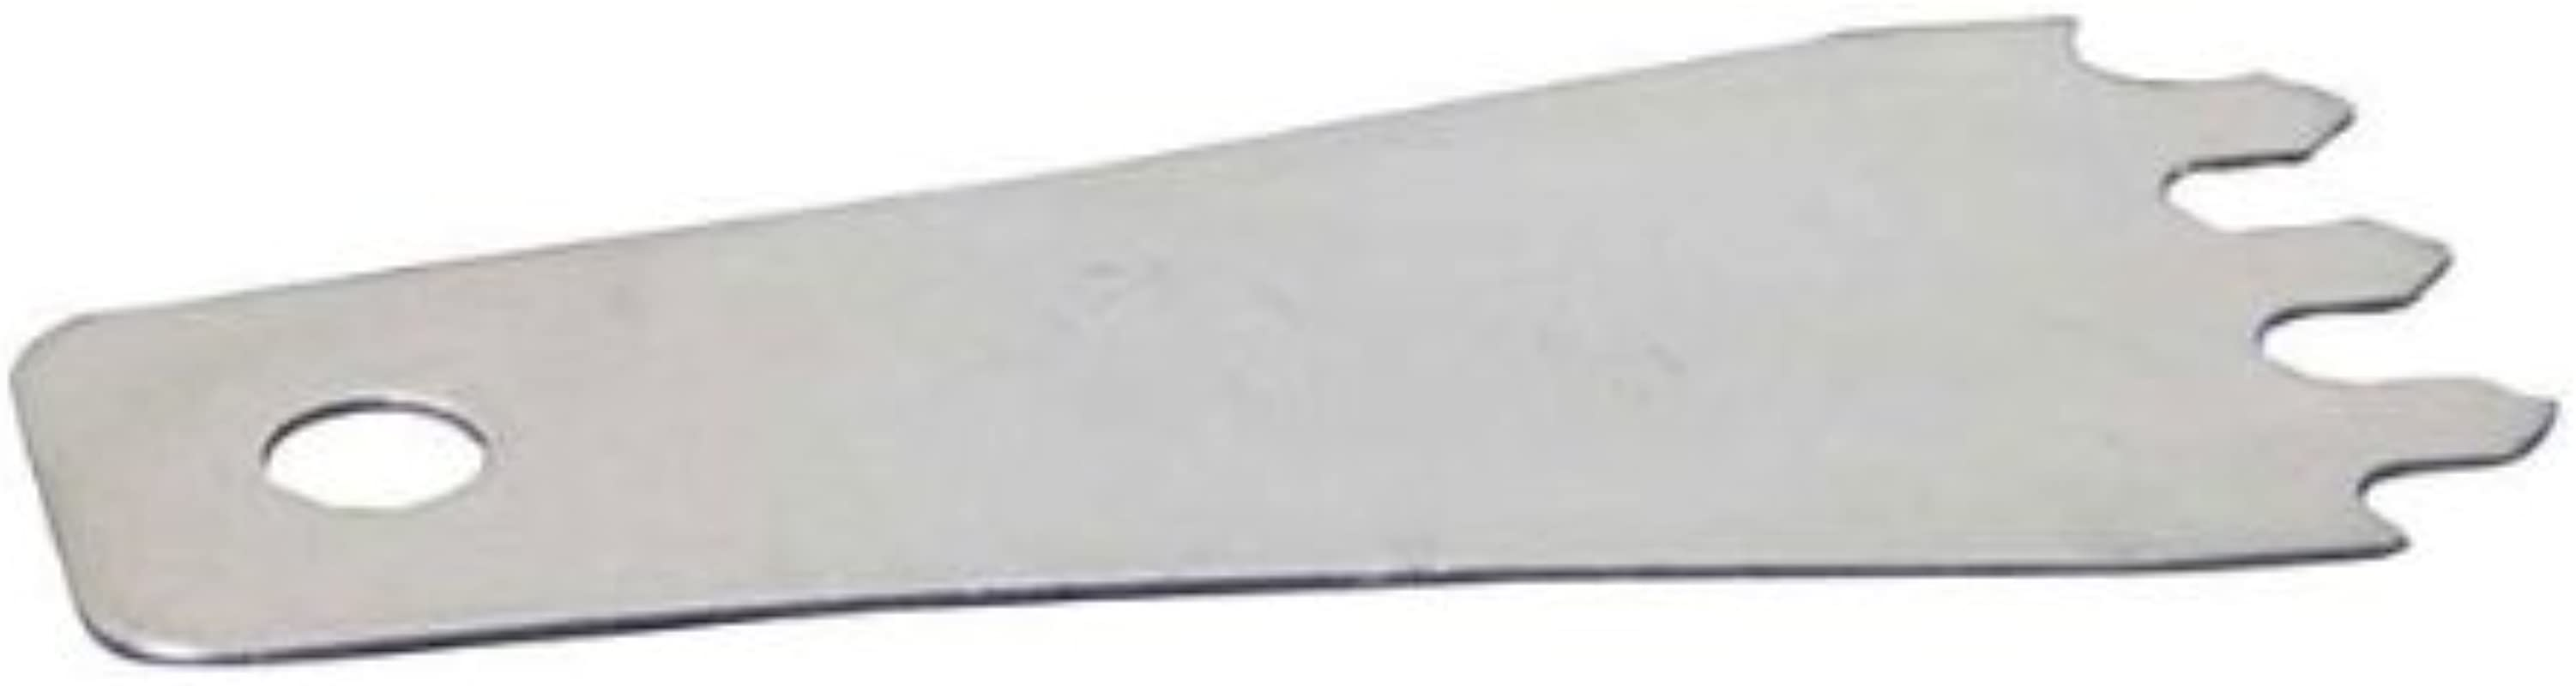 Cleaning Tool Grill Precision Flame Scraper